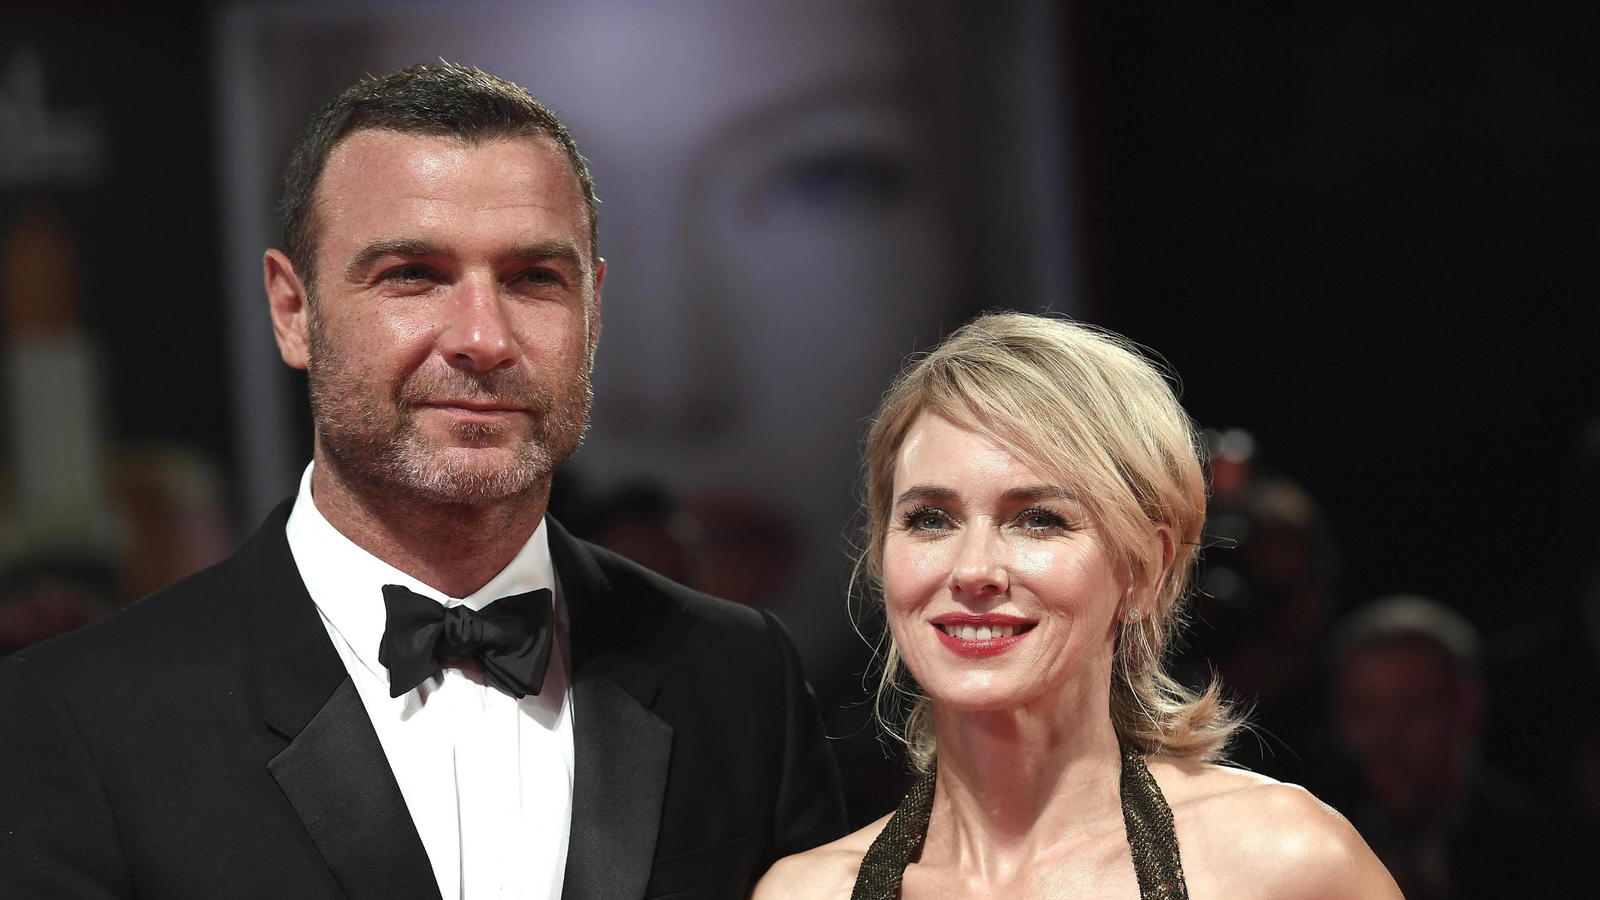 epa05521103 US actor Liev Schreiber (L) and British actress Naomi Watts (R) arrive for the premiere of 'The Bleeder' during the 73rd Venice Film Festival in Venice, Italy, 02 September 2016. The festival runs from 31 August to 10 September. EPA/CLAUD